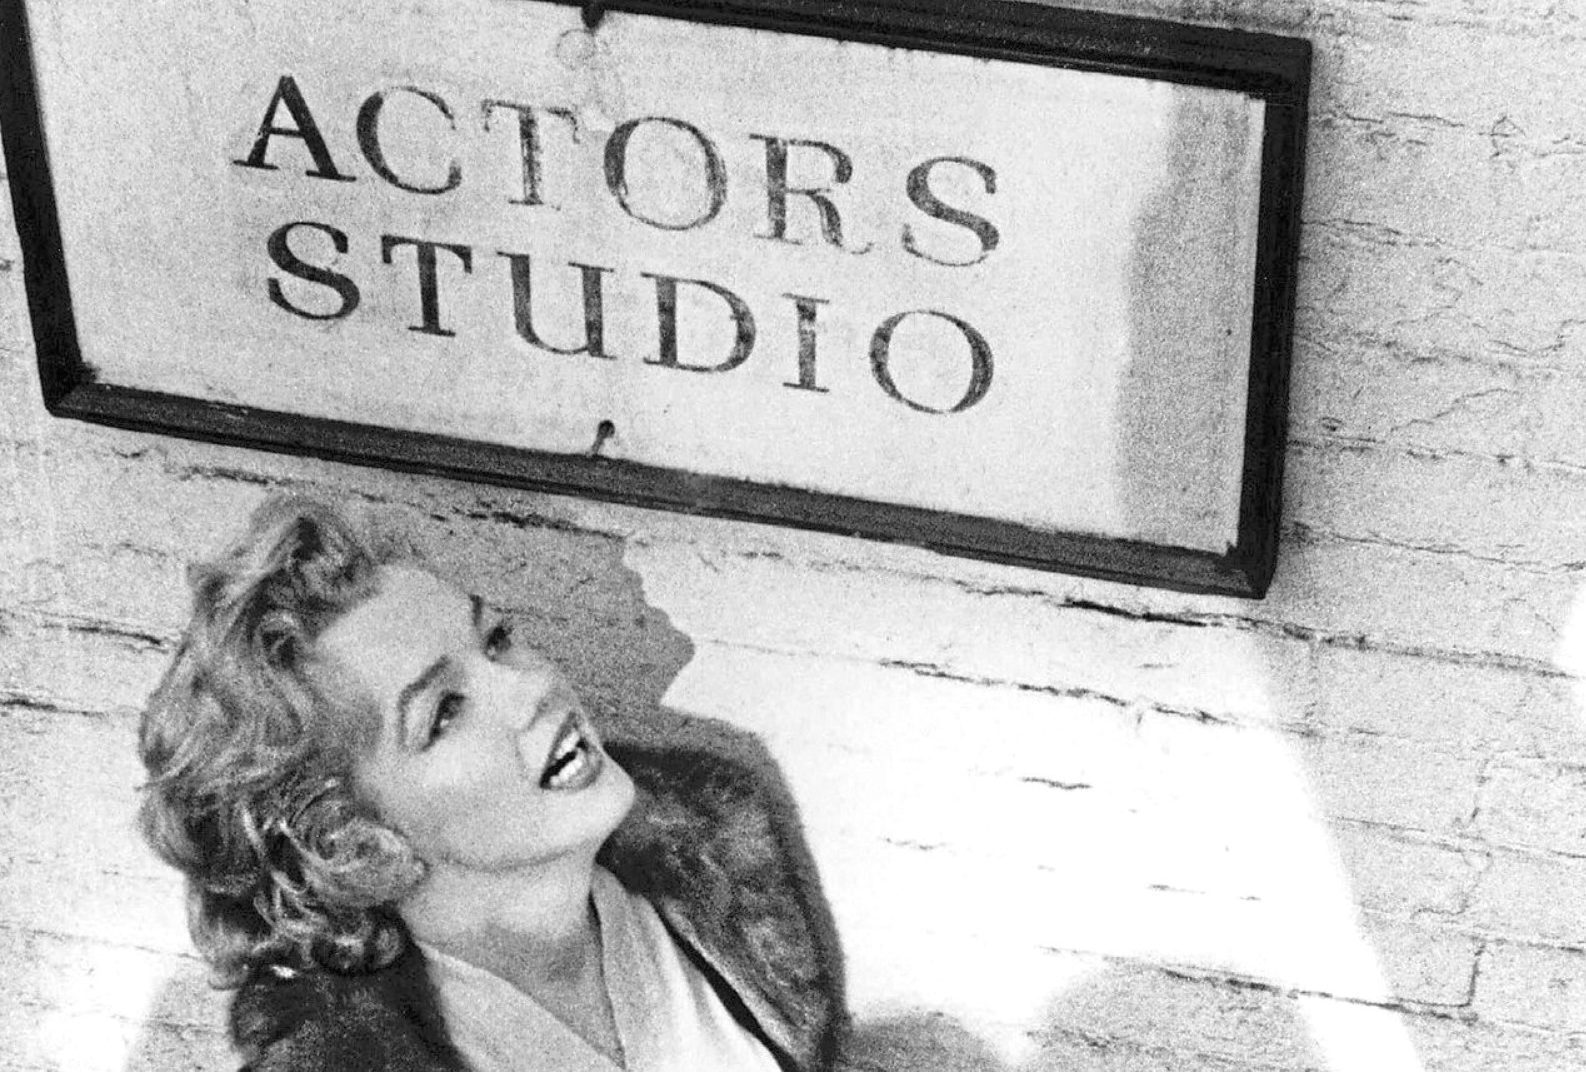 Marilyn Monroe wanted to be taken seriously as an actor and enrolled in the Actors Studio in New York